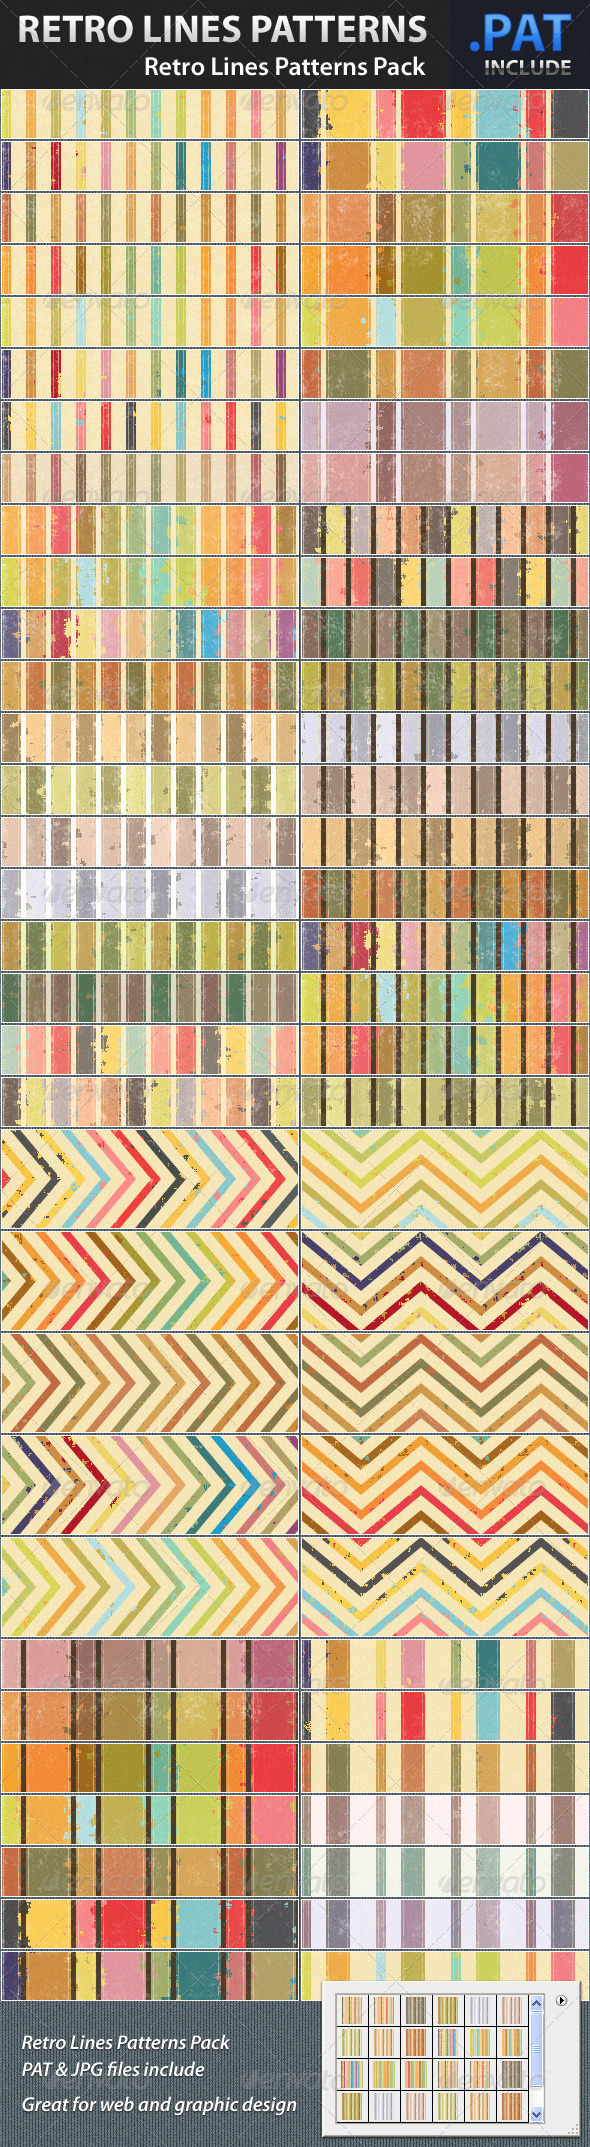 Retro Lines Patterns Pack - Art Textures